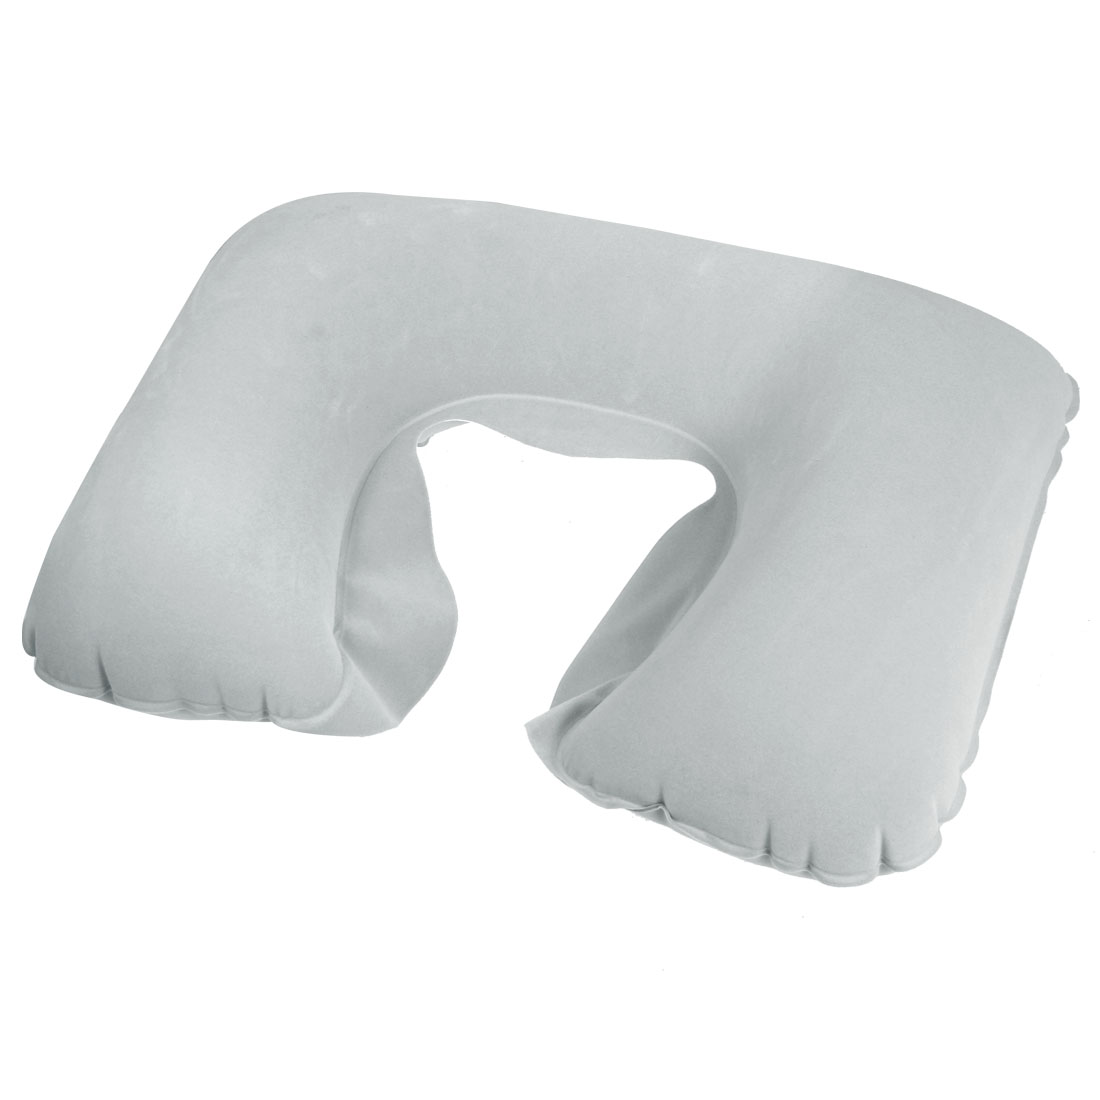 Gray Inflatable Soft Flannel Surface U Shape Neck Pillow for Travel